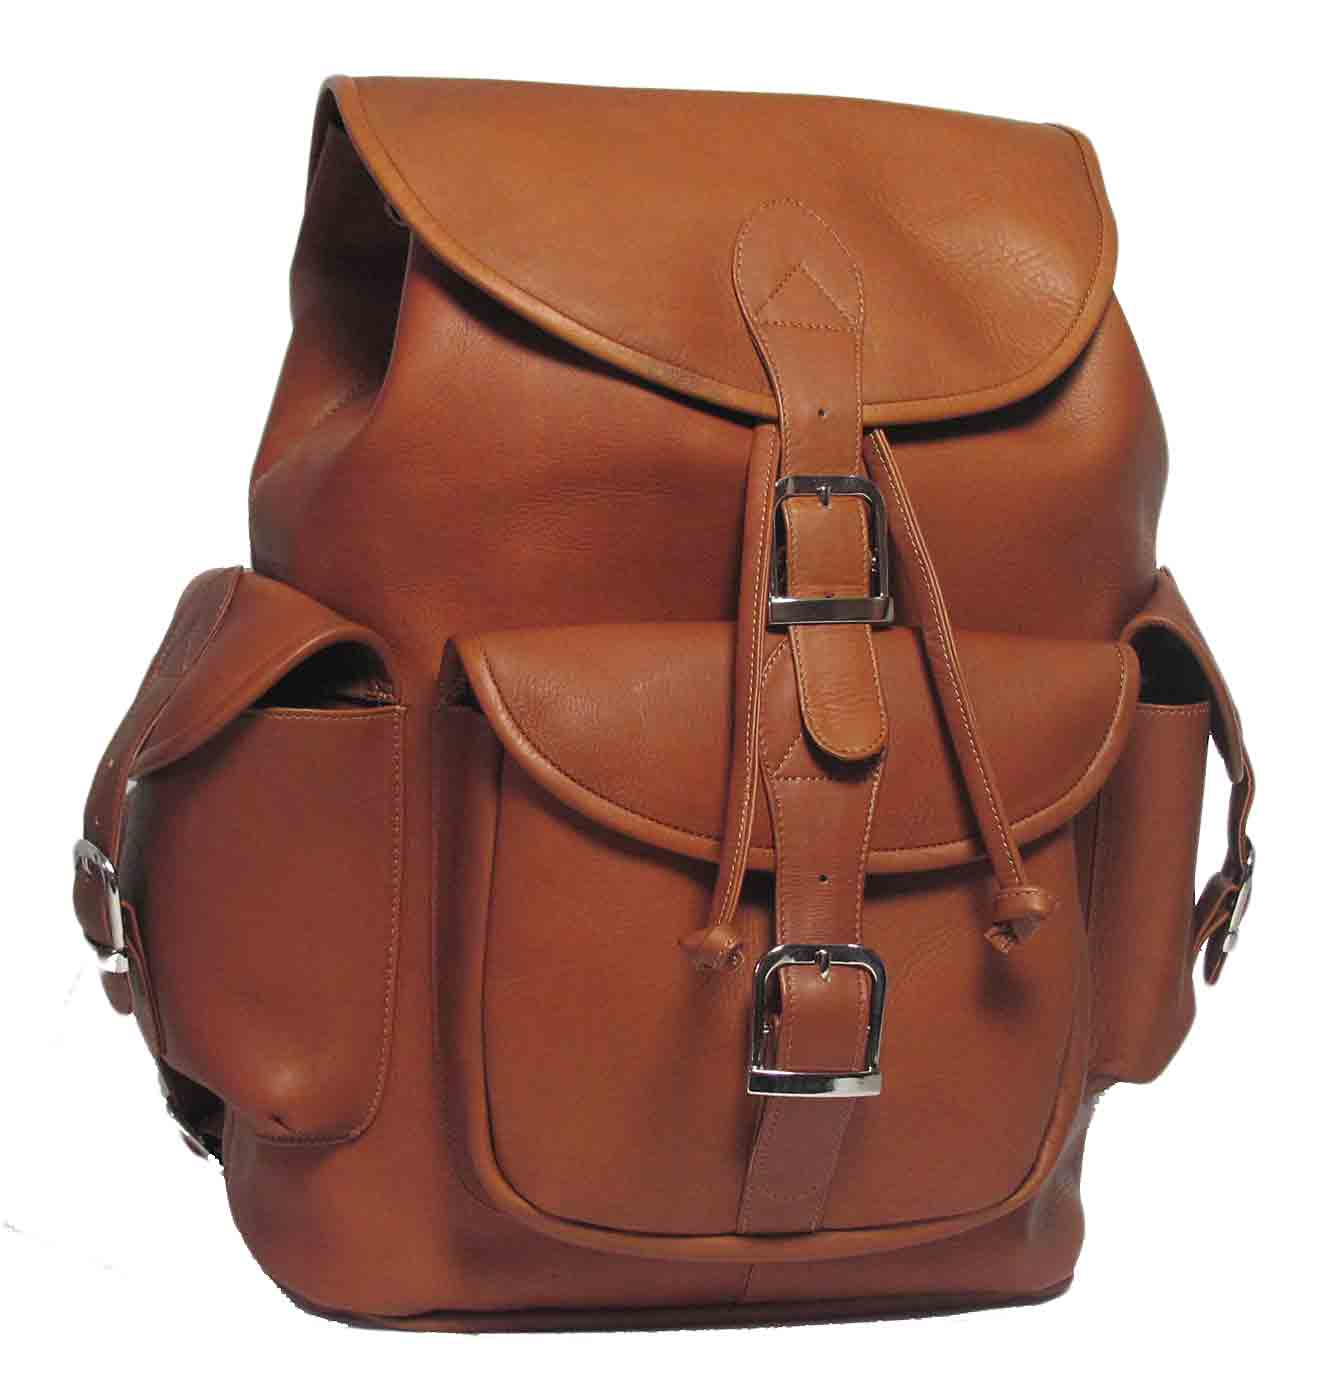 Leather Rucksack Backpack Bla4BeNc